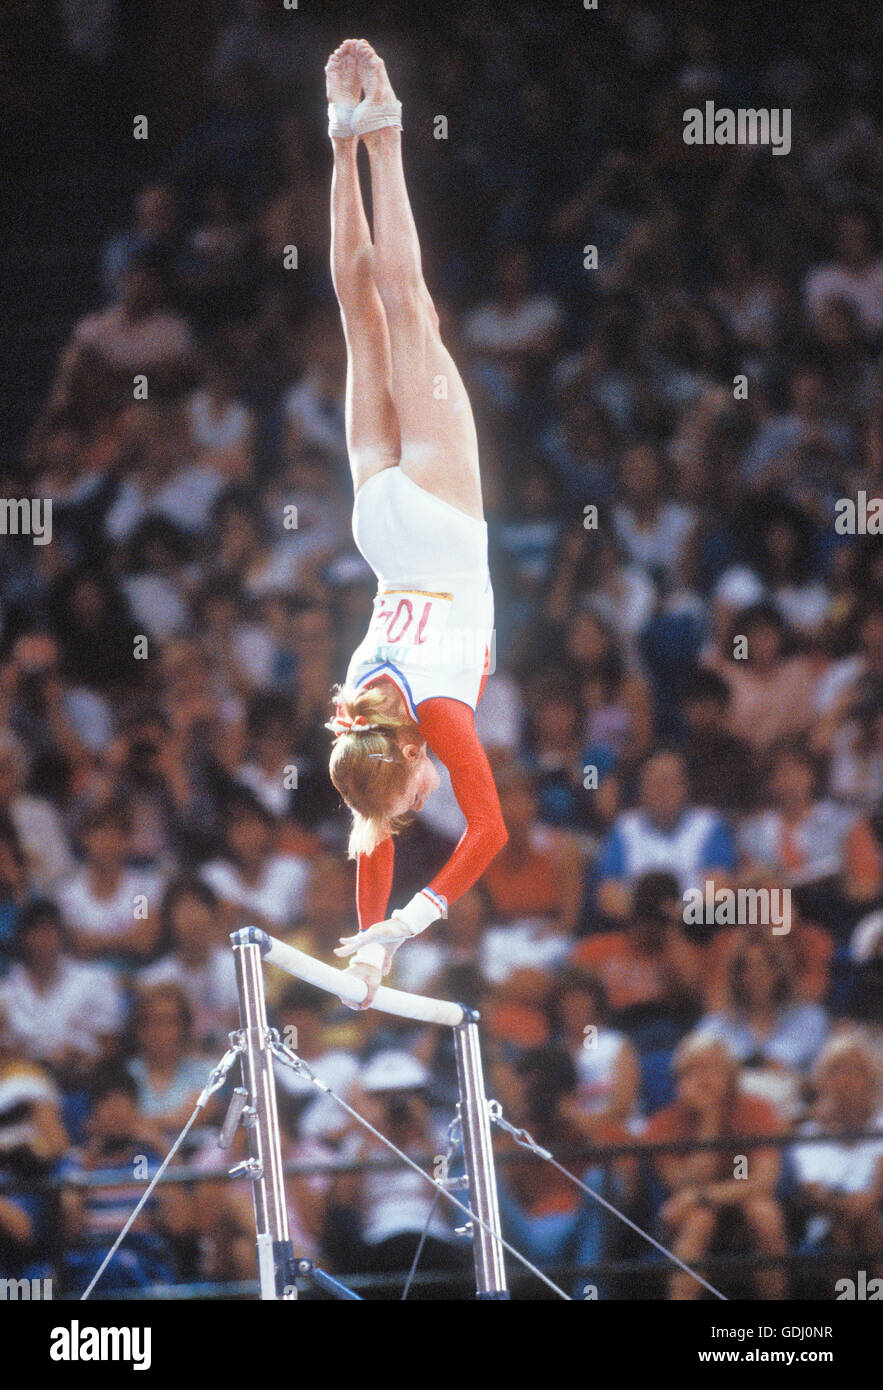 Julianne McNamara performs in uneven bars competition at 1984 Olympic Games in Los Angeles. - Stock Image